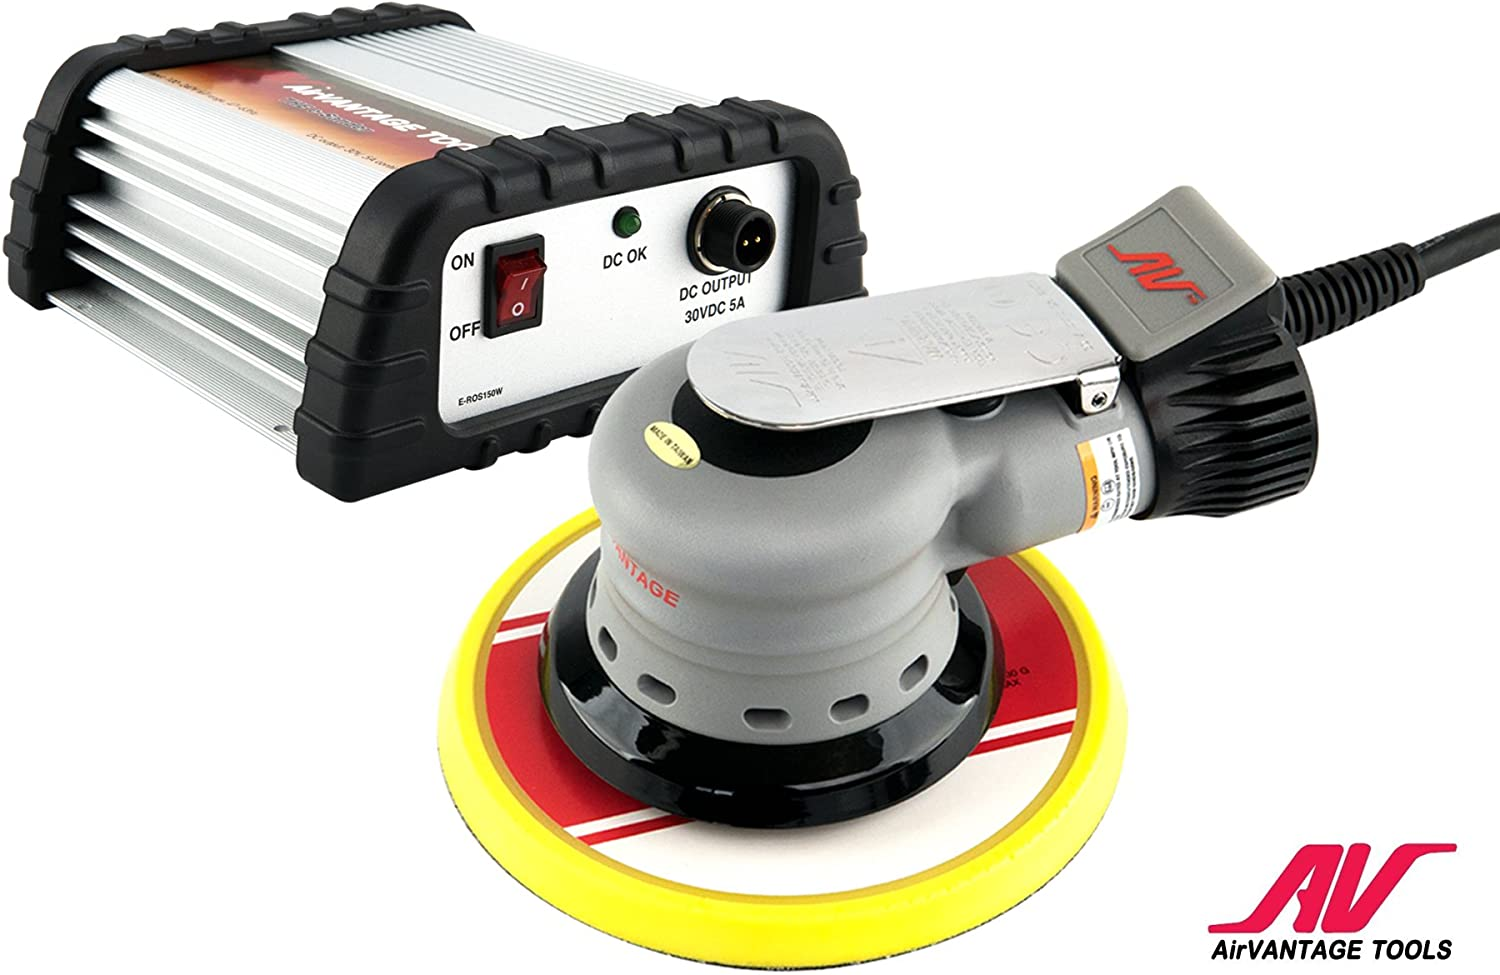 AirVANTAGE 5 Palm-Style, Industrial-Grade Electric Sander Kit with Power Supply Non-Vacuum- 3 16 Orbit Low-Profile PSA Vinyl Pad